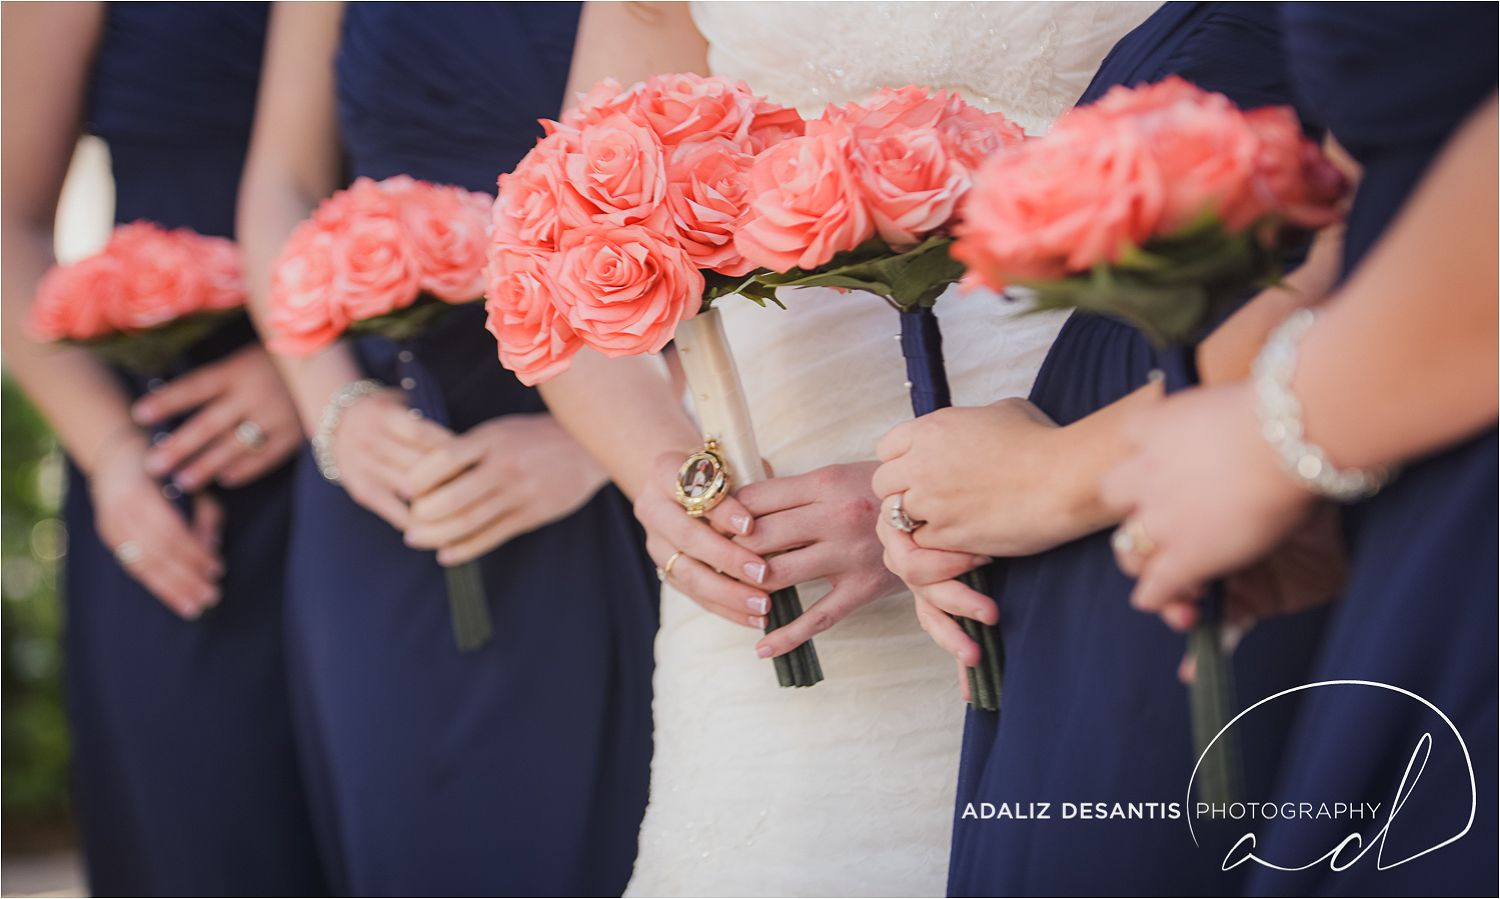 Diy Coffee Filter Flower Wedding Bouquet For Bride And Bridesmaids Crowne Plaza Hollywood Beach Fl Adaliz Desantis Photography